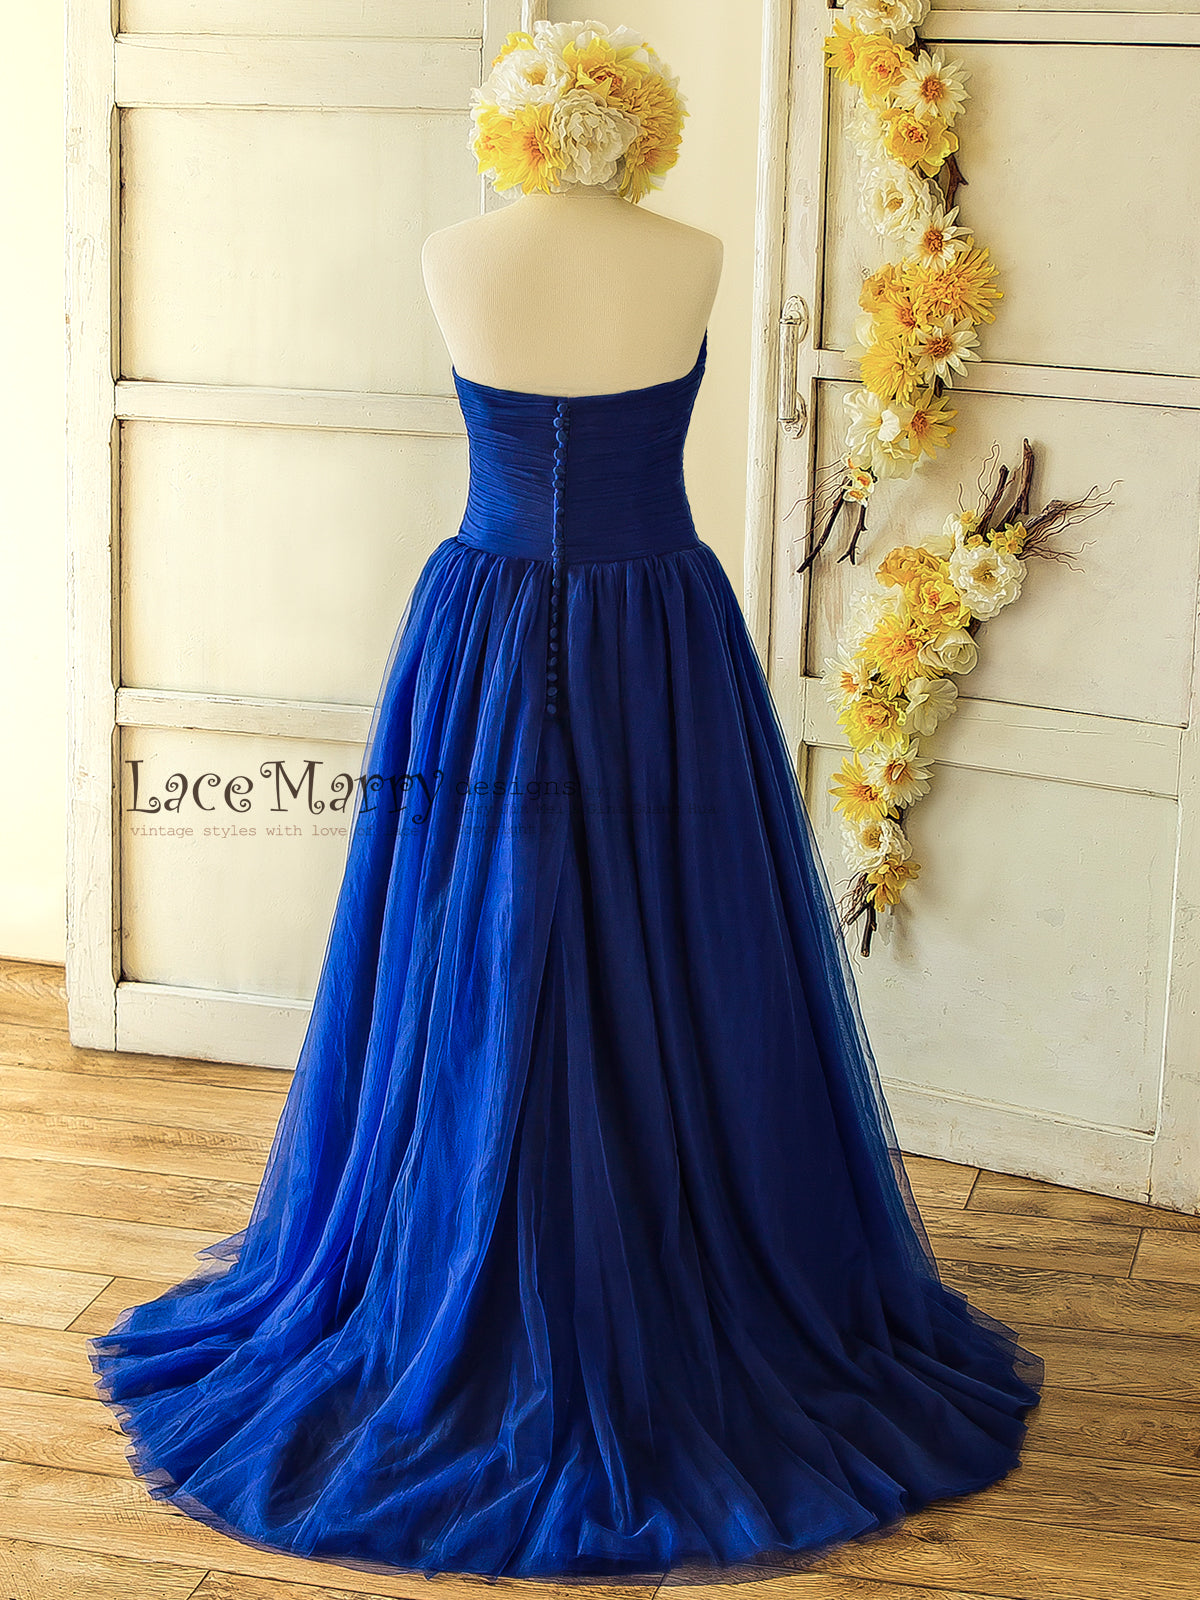 5c9e164b8ed Royal Blue Wedding Dress  Wedding Dress with Straight Cut Back with Buttons  ...